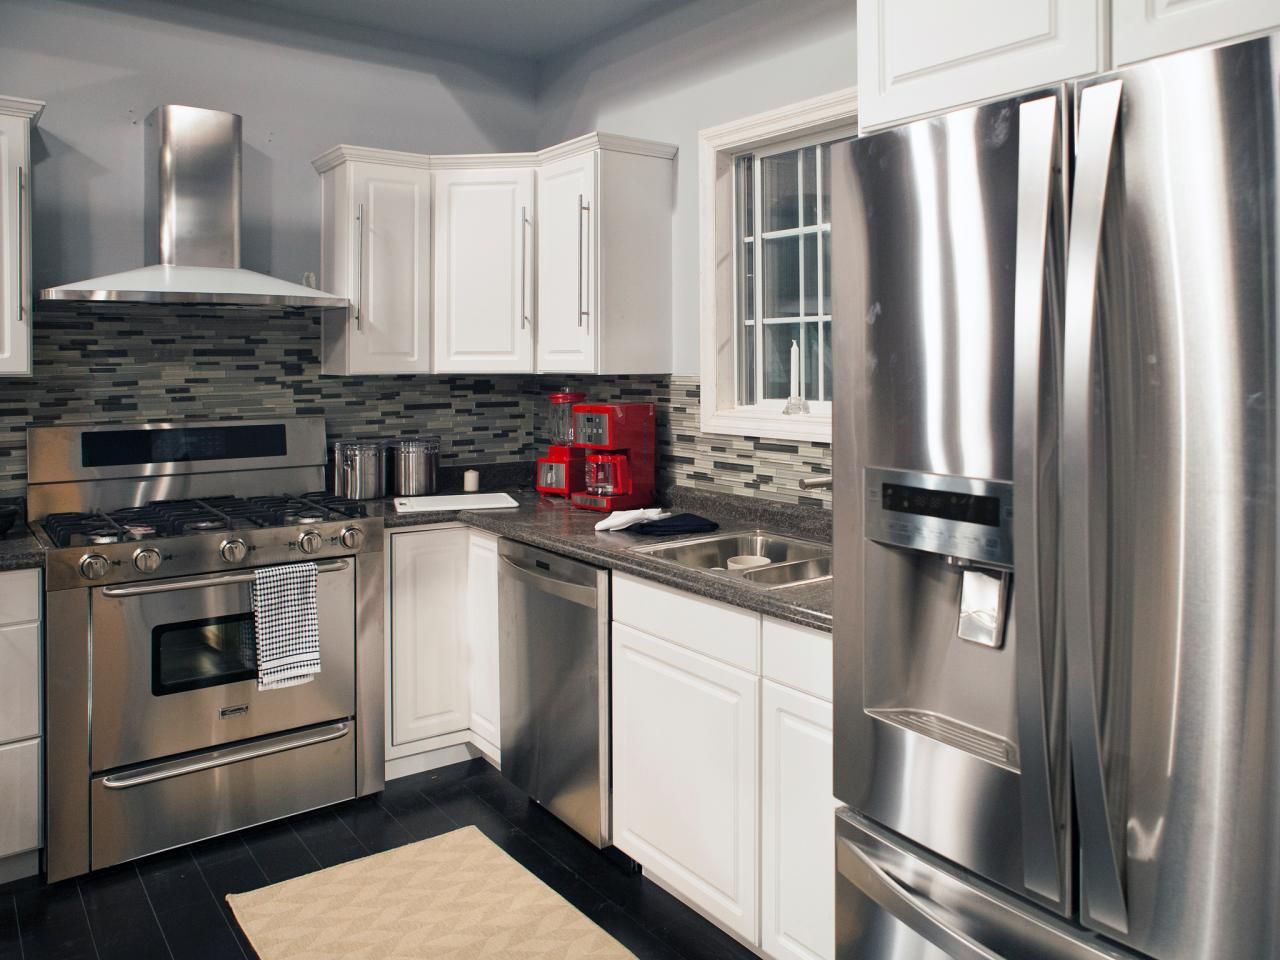 Stainless Steel Appliances Dark Gray Countertops And A